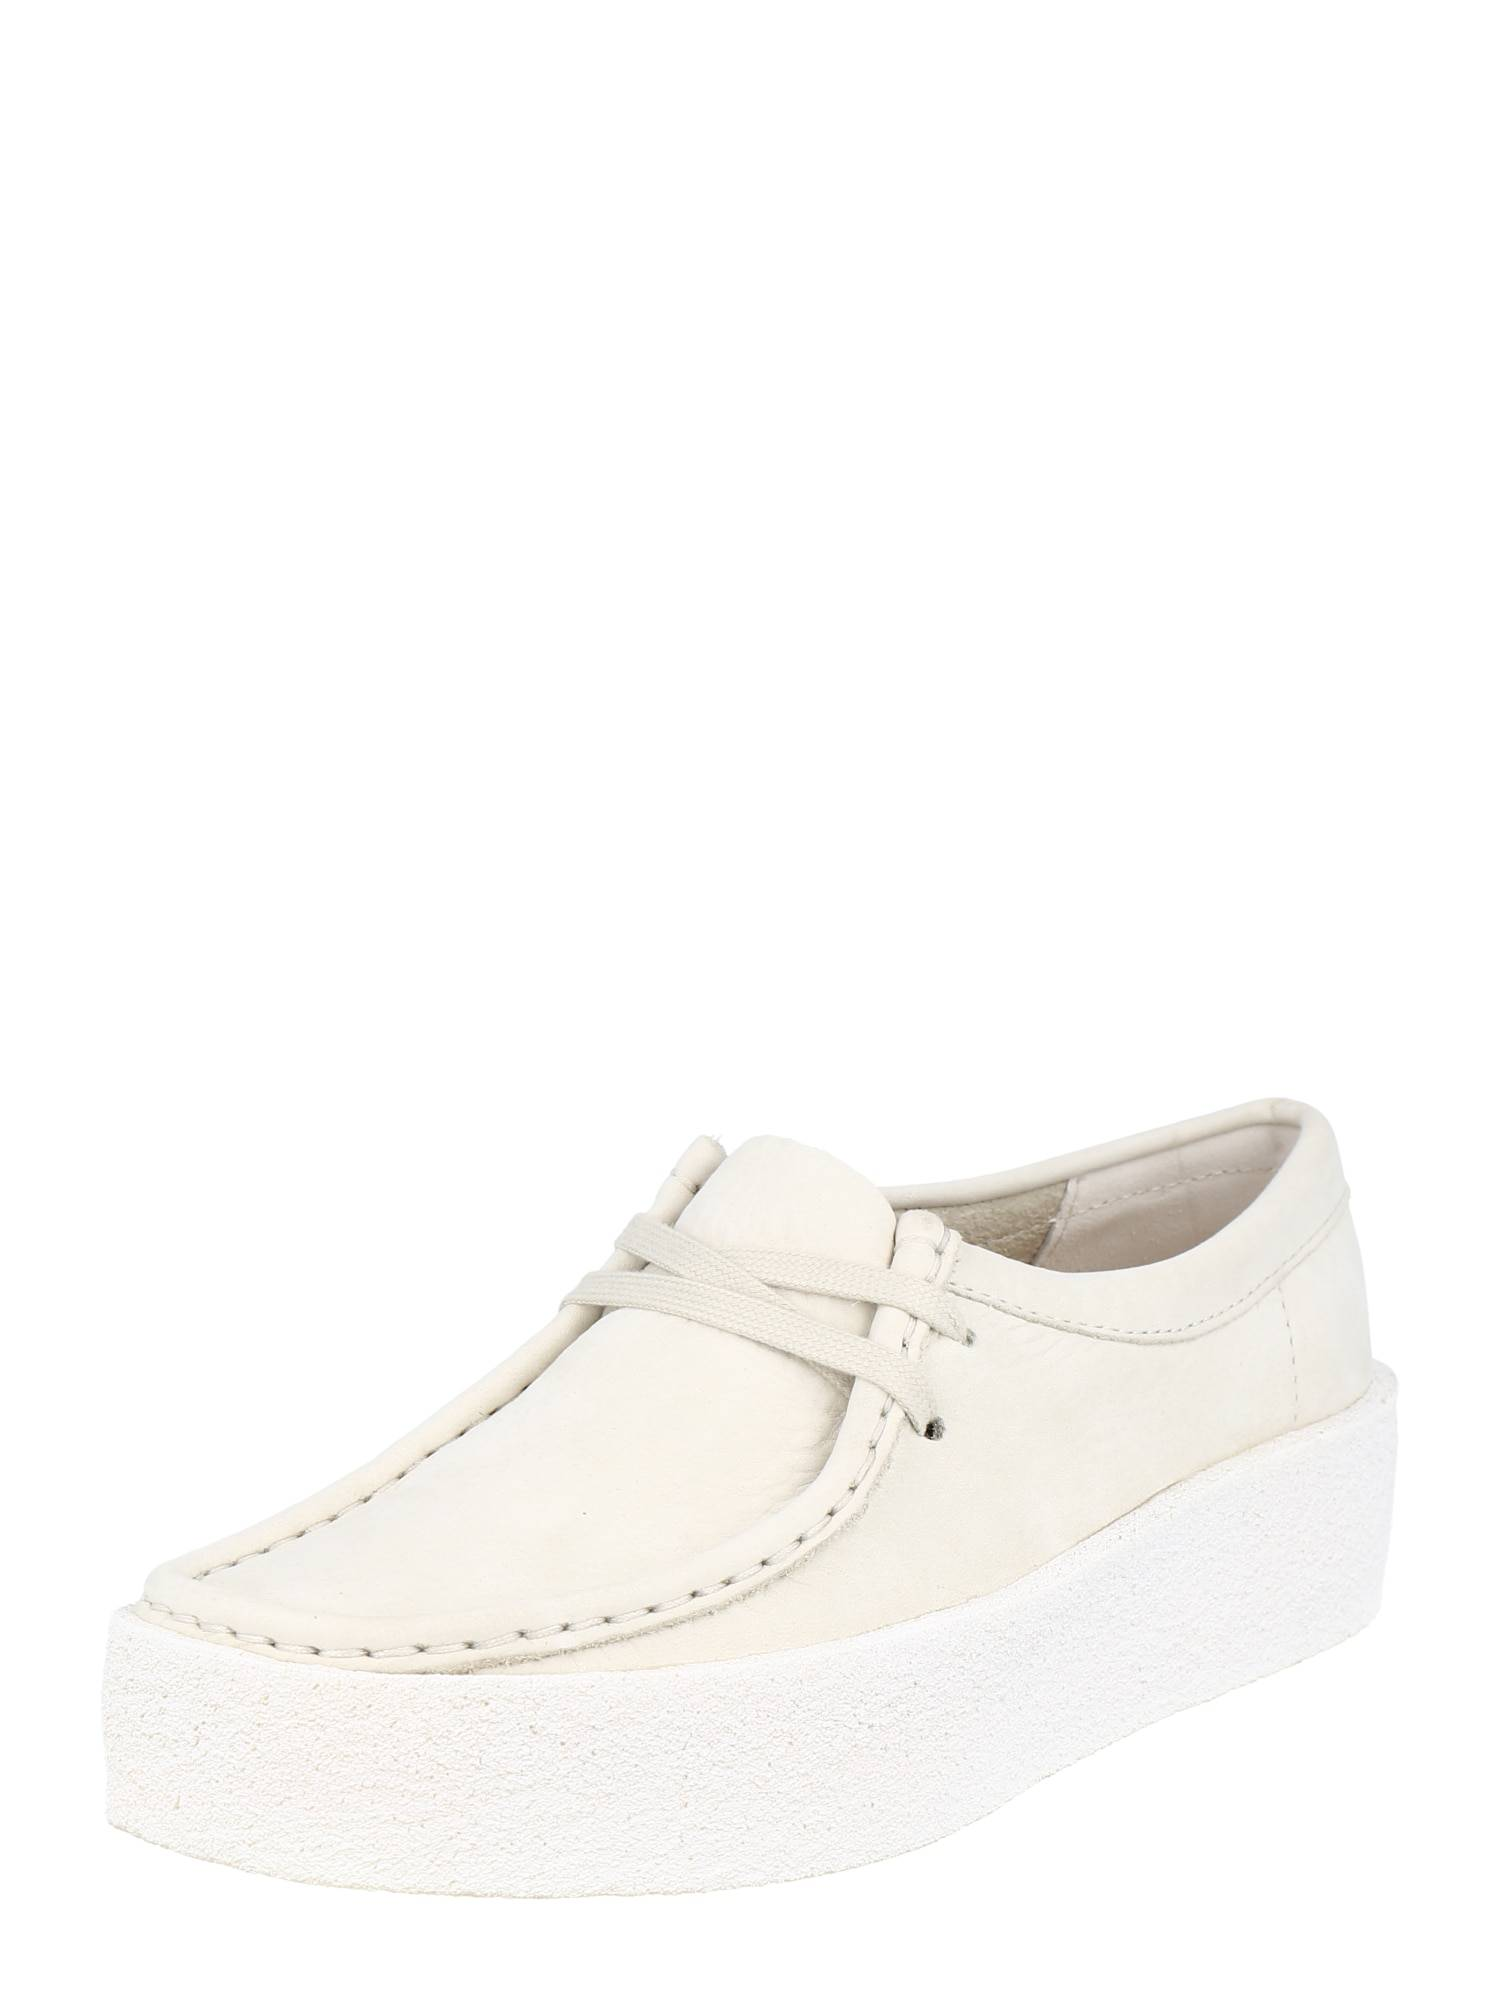 Clarks Originals Chaussure à lacets 'Wallabee Cup'  - Blanc - Taille: 7 - female